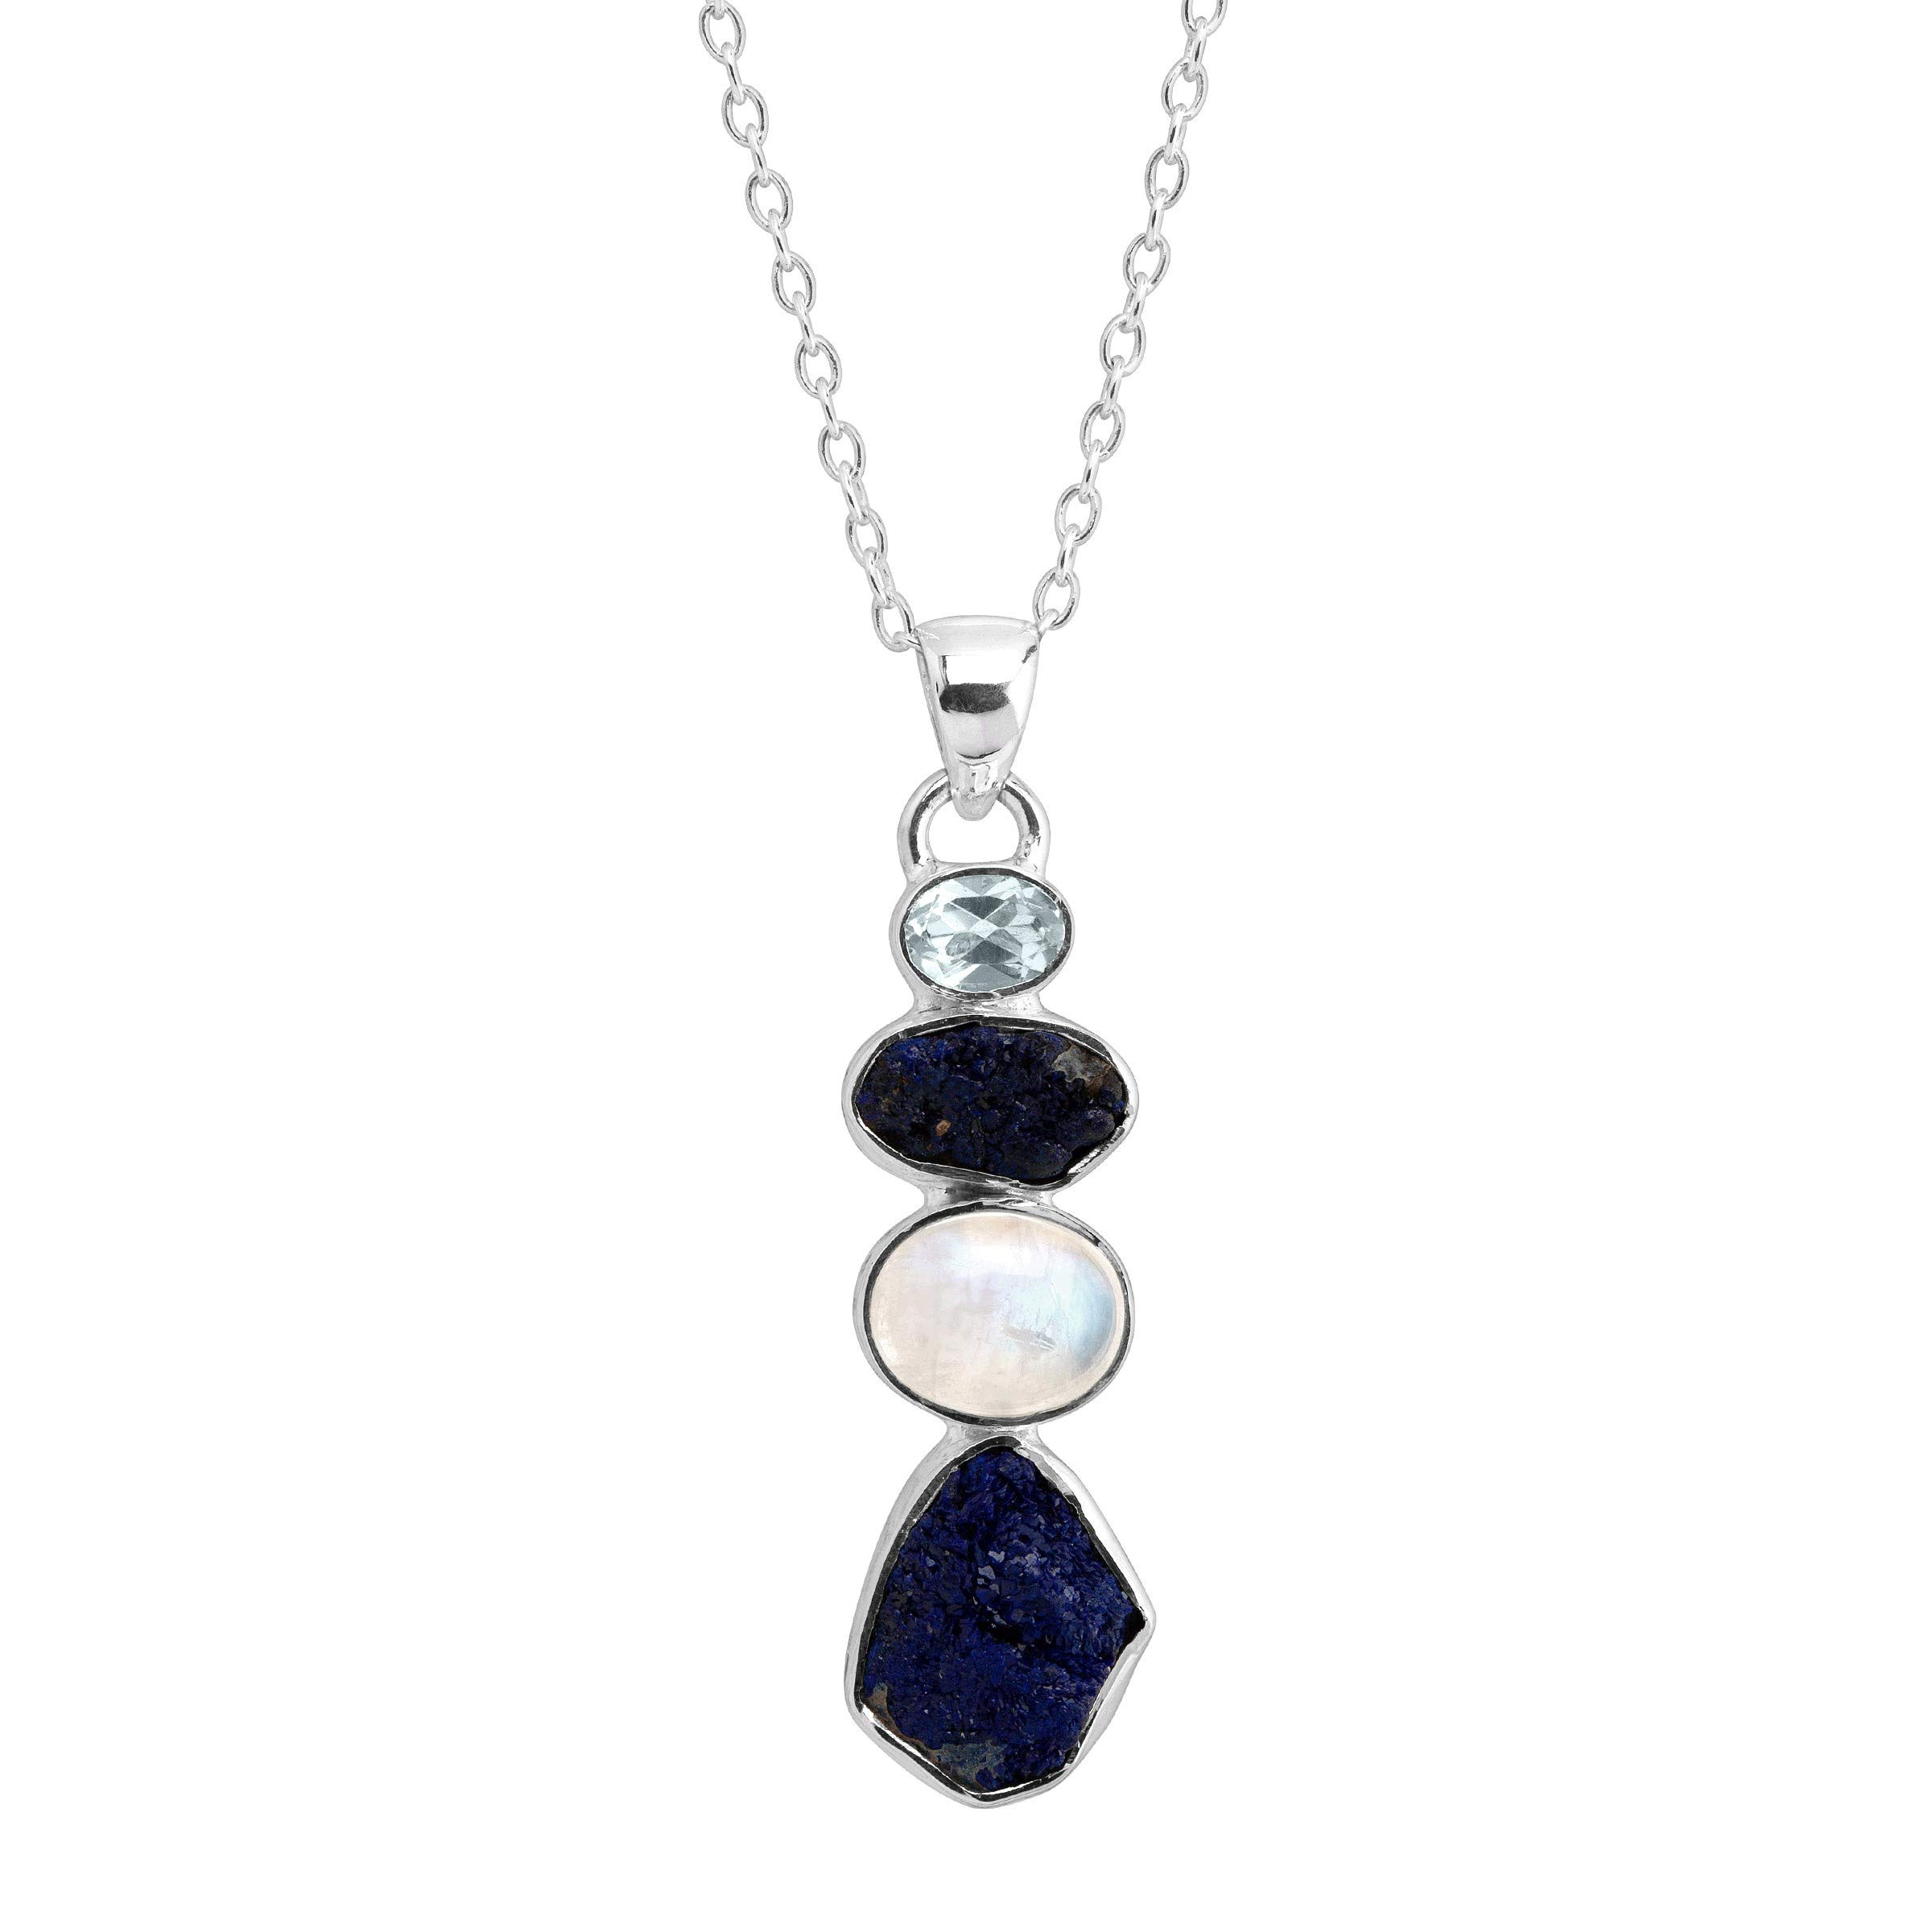 Silpada 'Pacific' Natural Mixed Blue Stone Pendant in Sterling Silver